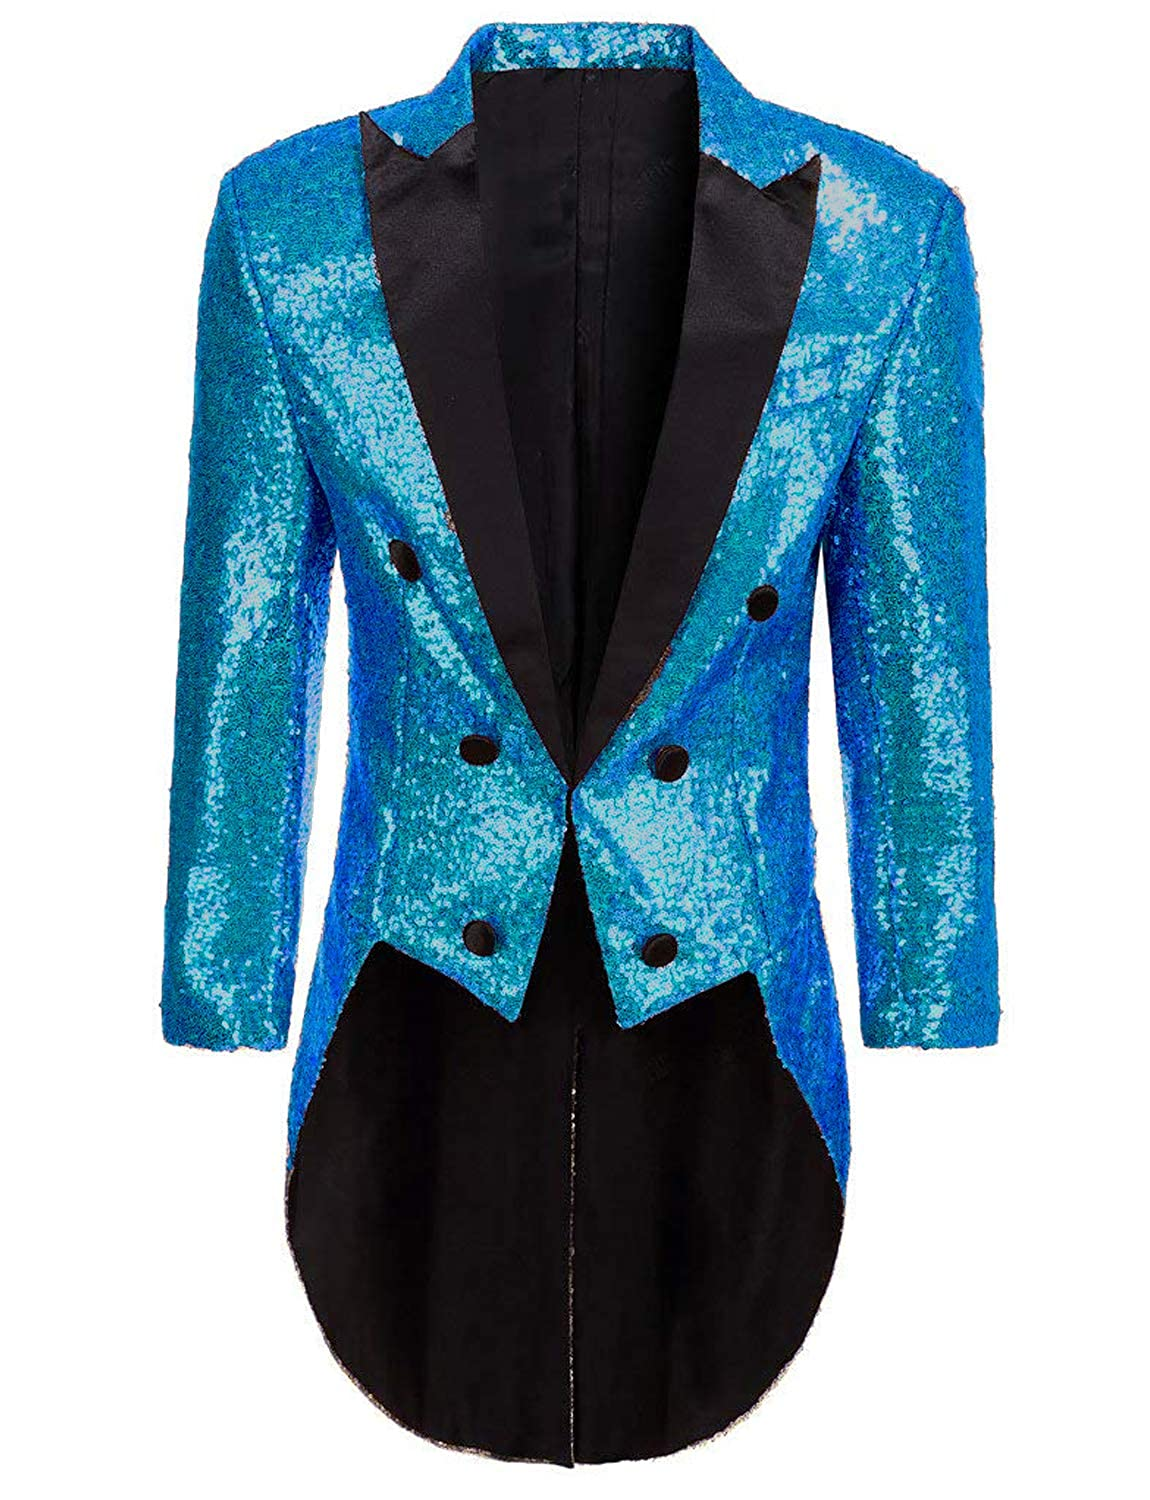 DGMJDFKDRFU Sequins Tailcoat Costume Men for Halloween Tuxedo JK005